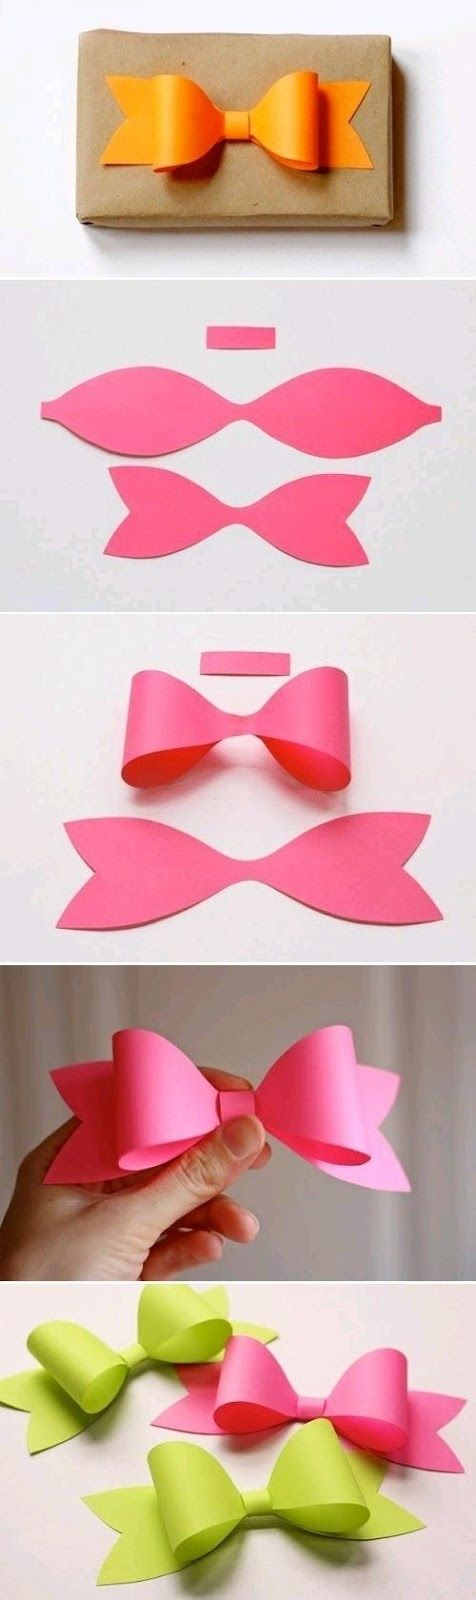 firmado por tina: Perfect Bow papel!